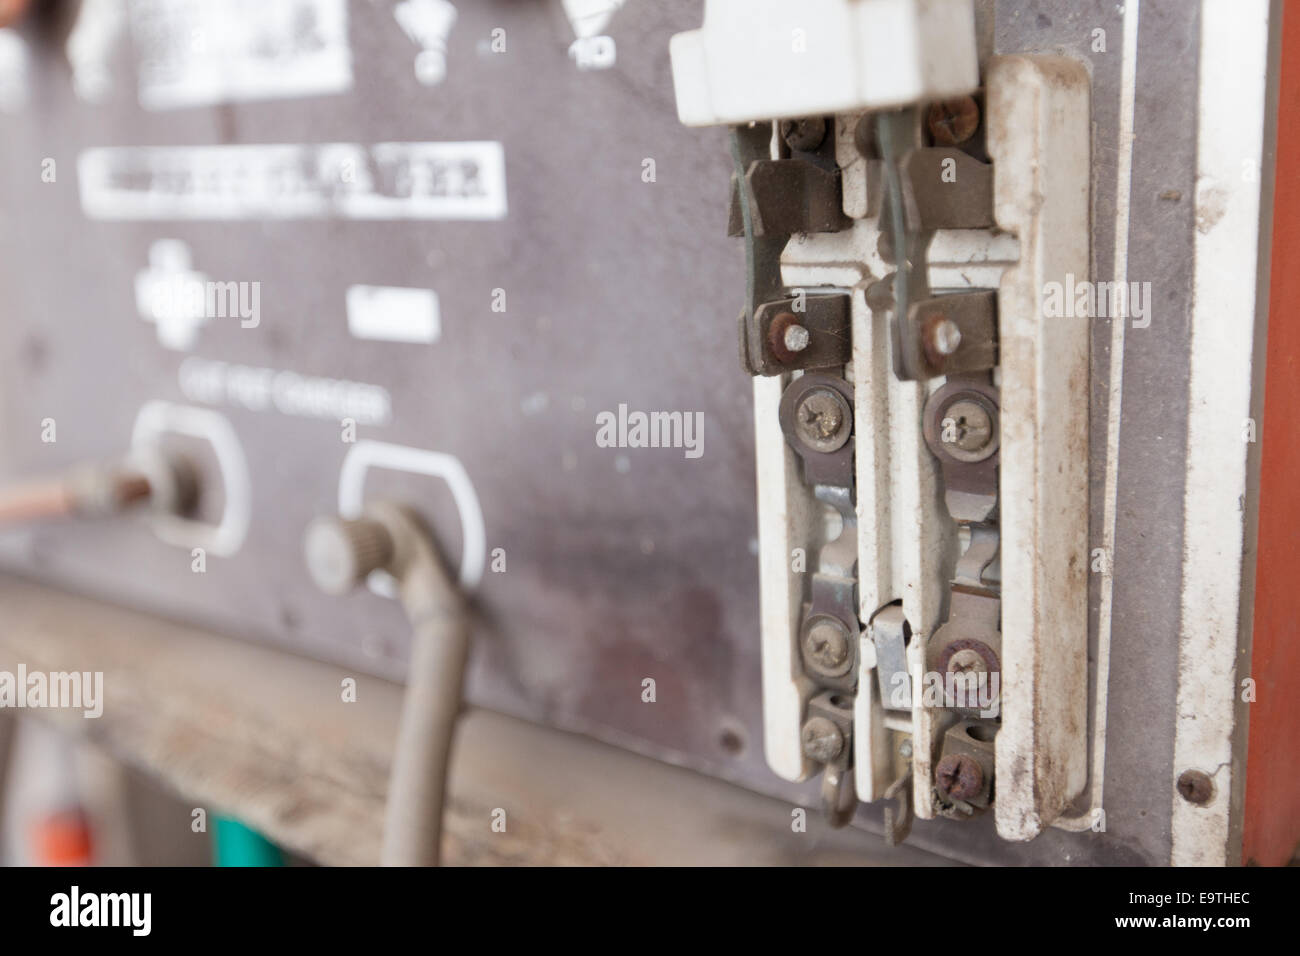 Circuit Breaker Old Stock Photos Images Kinds Of Breakers For Protecting The Illuminating Distributing Broken Vintage Retro Large Electric With Protection Fuse Image